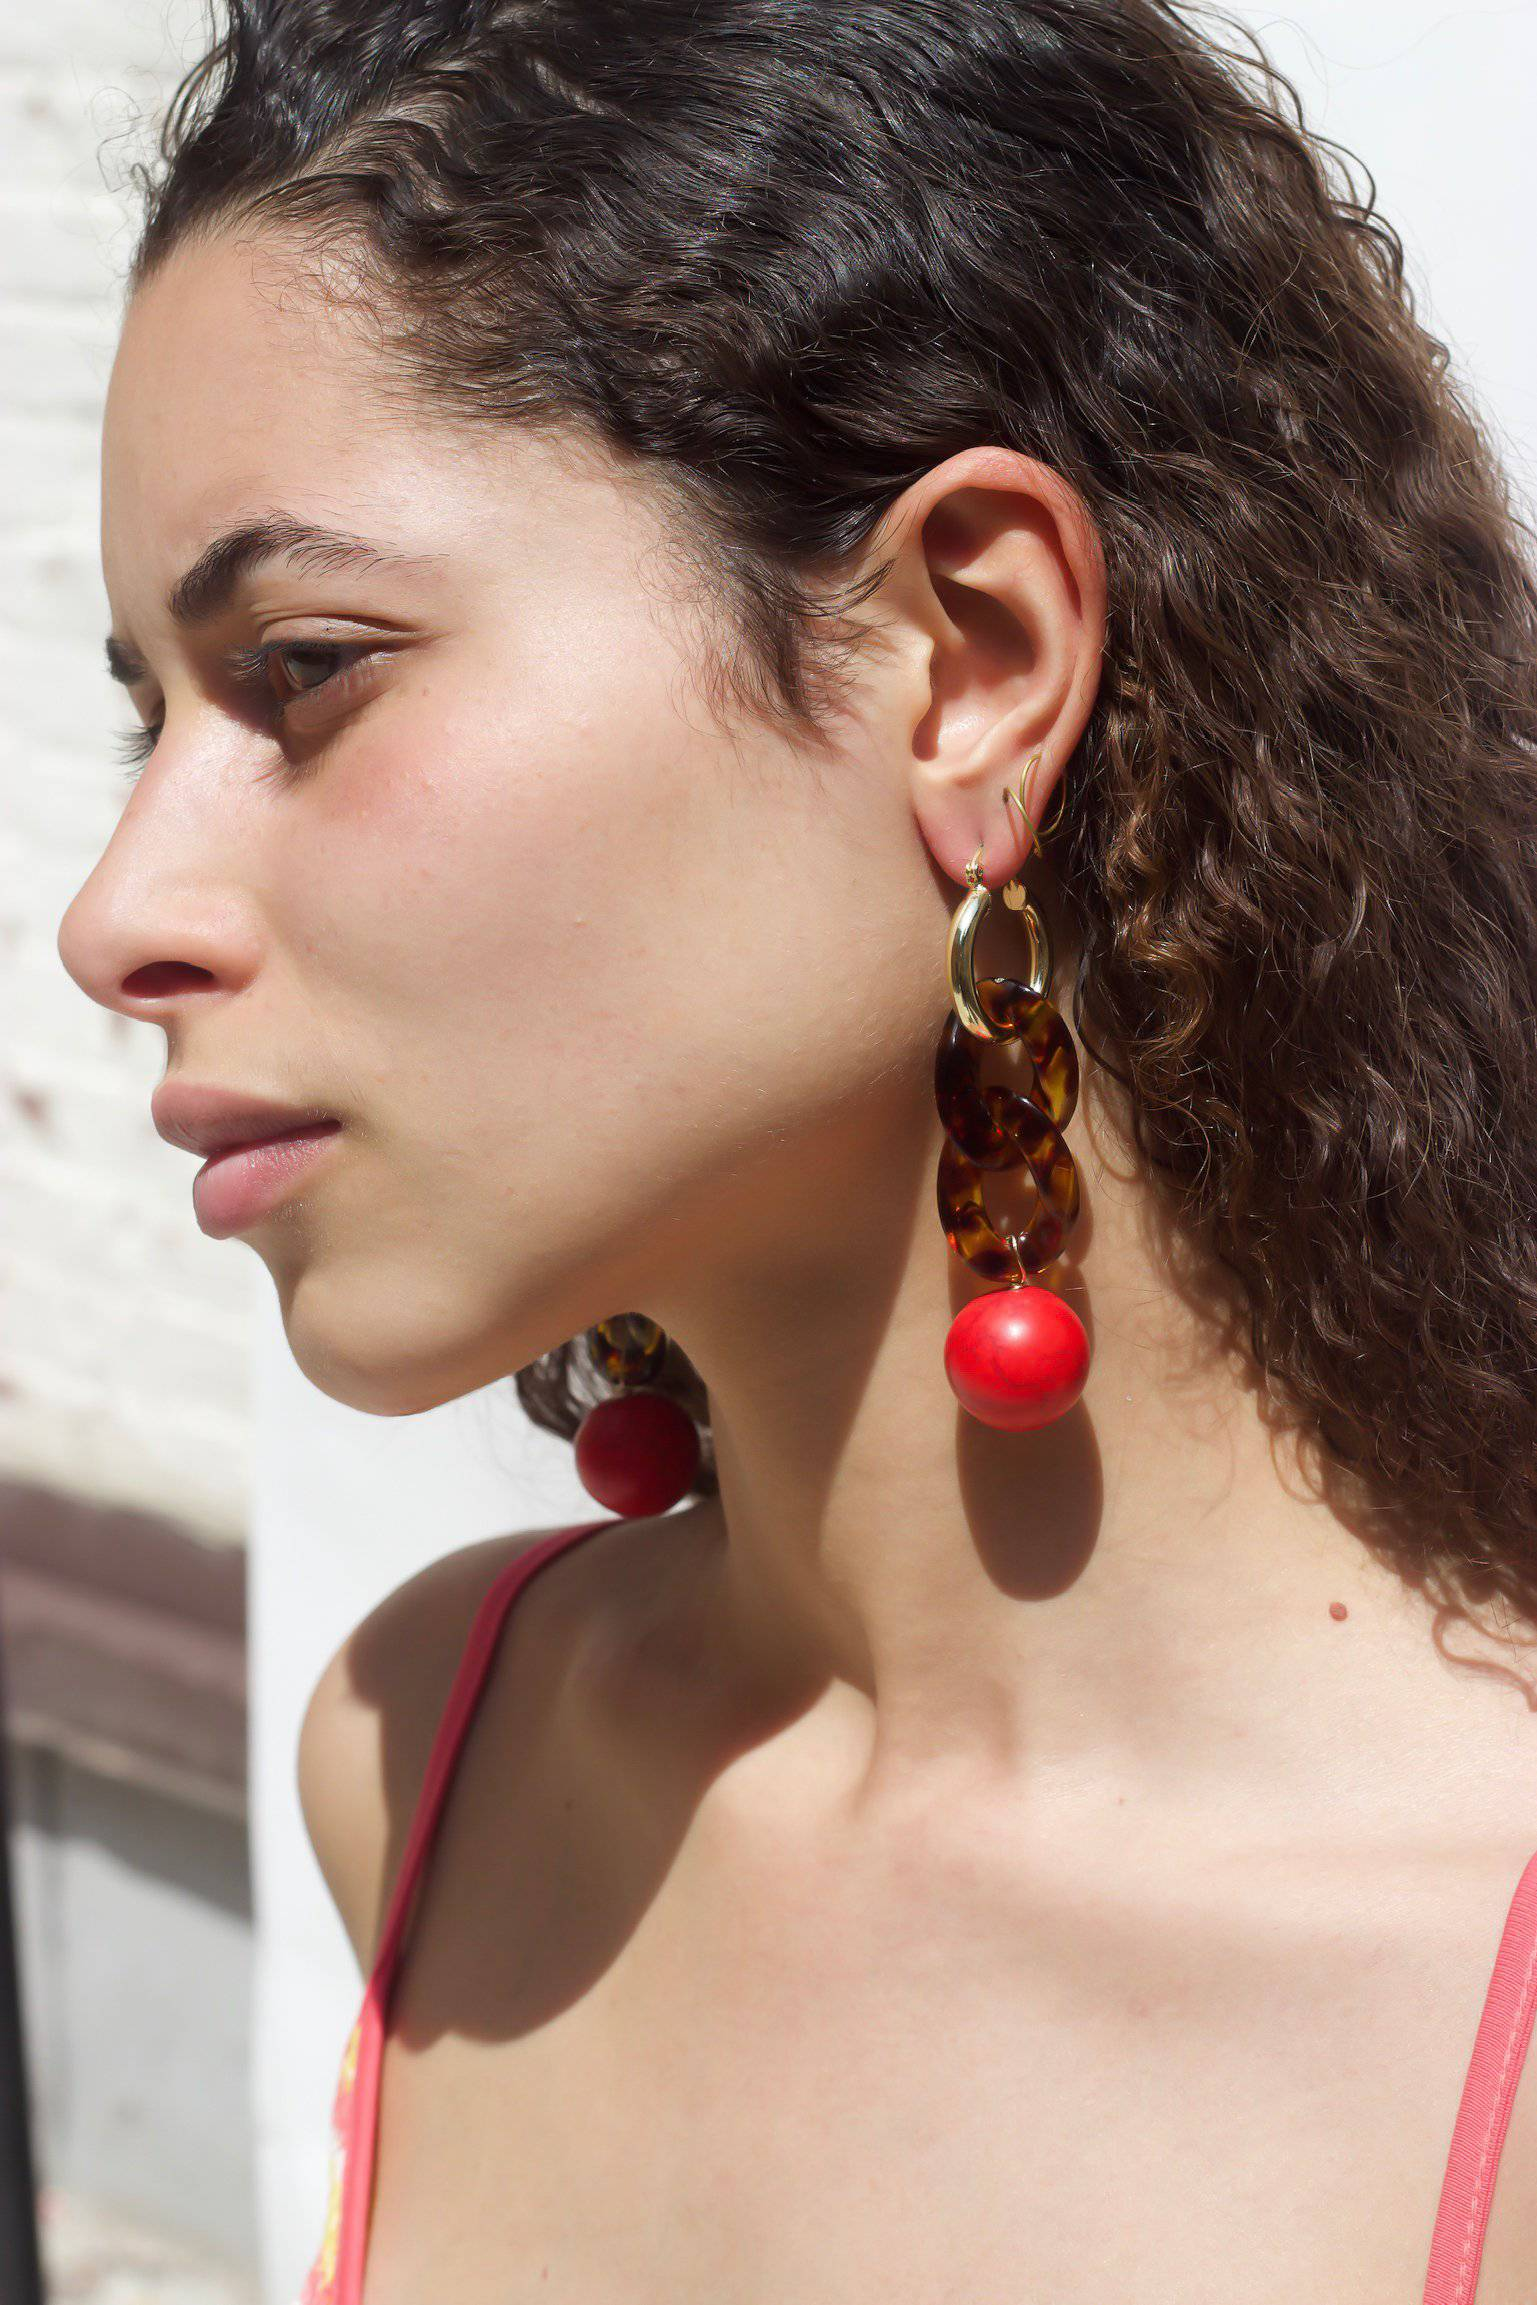 'Playa' Earrings - Serendipitous Project